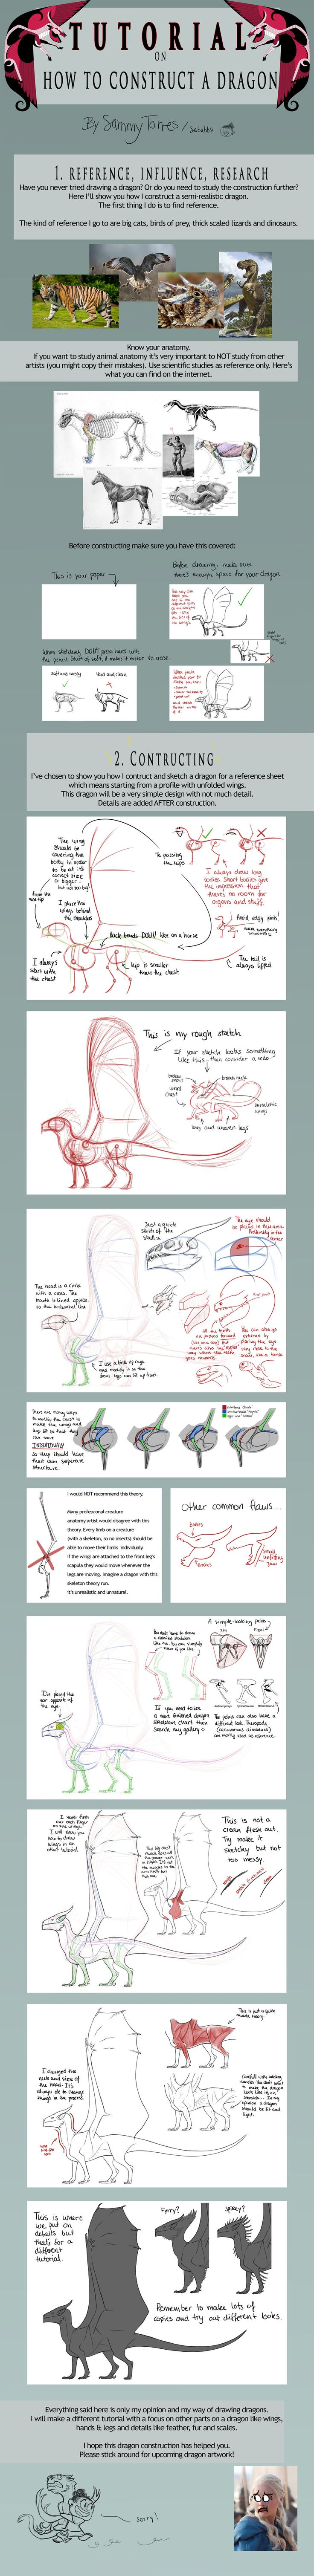 best 25 a dragon ideas on pinterest dragon face how to draw